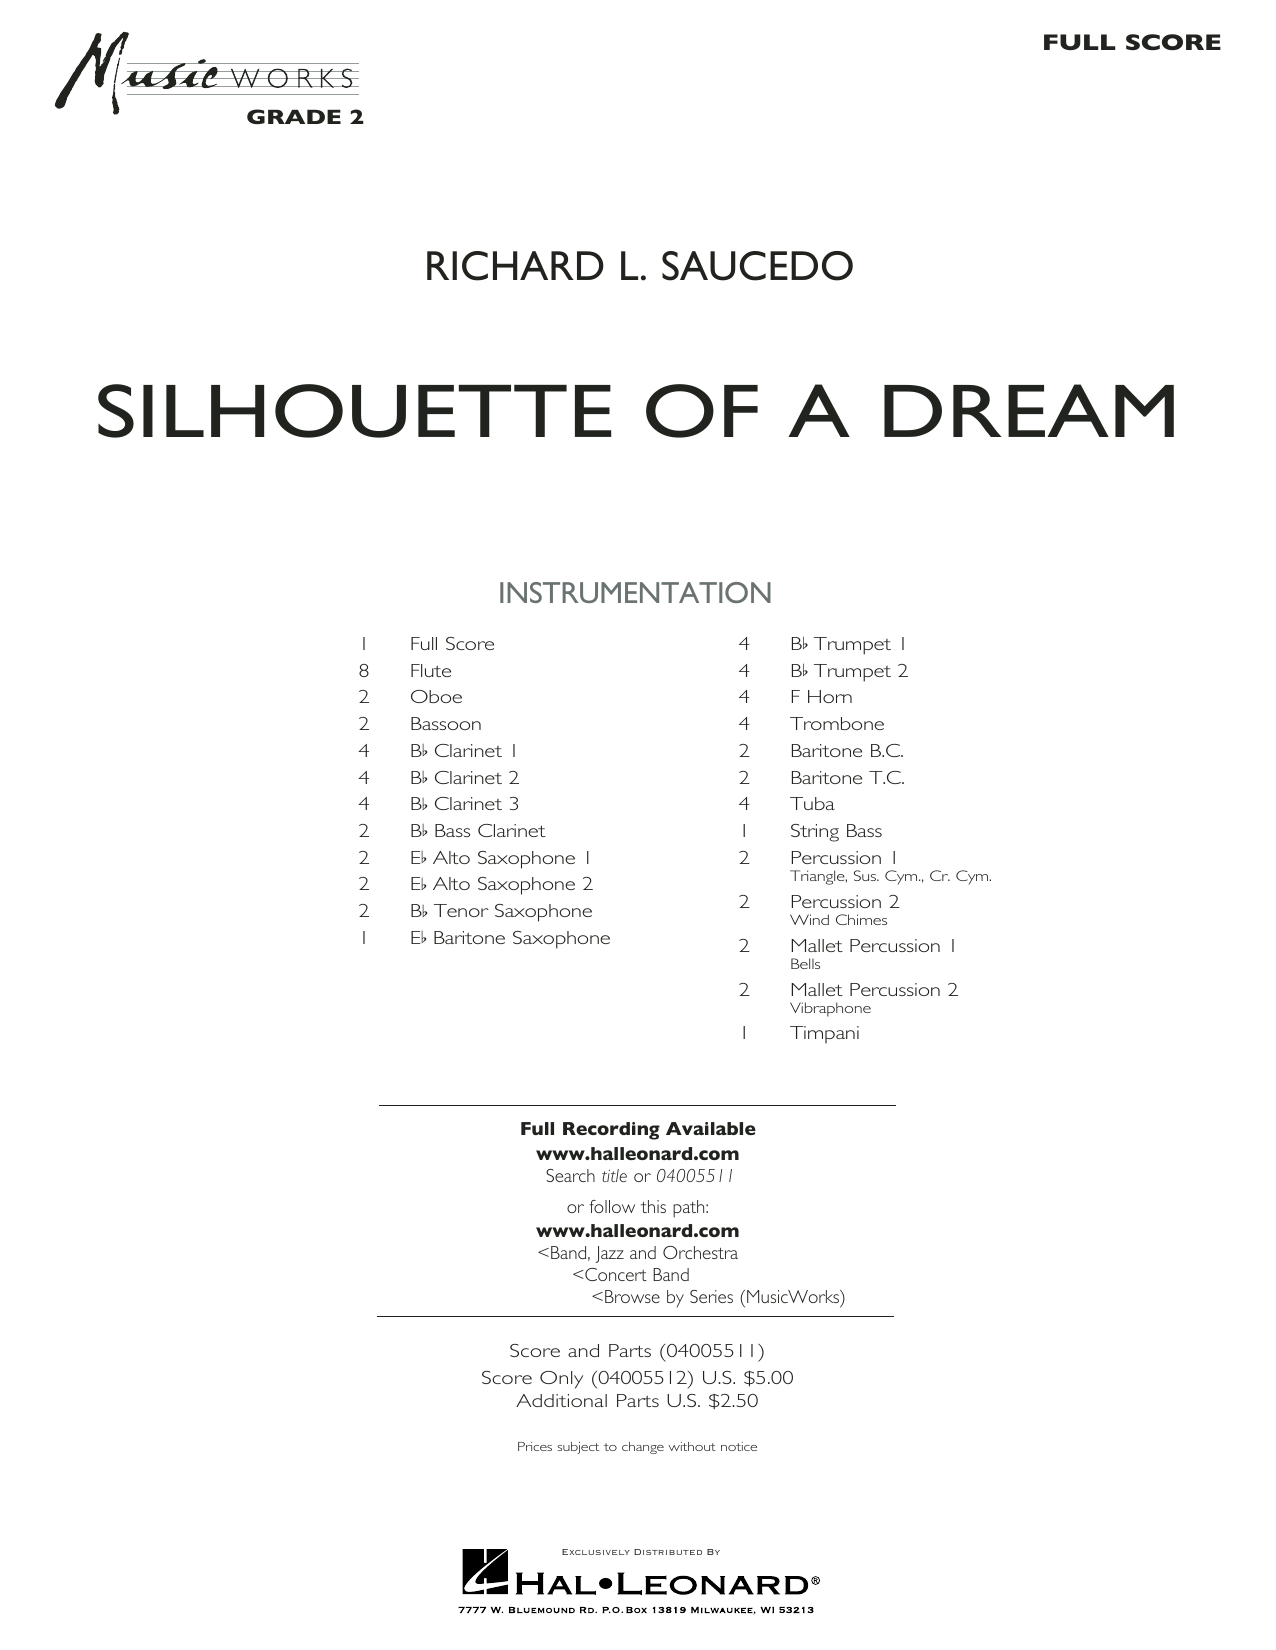 Silhouette of a Dream - Full Score (Concert Band)